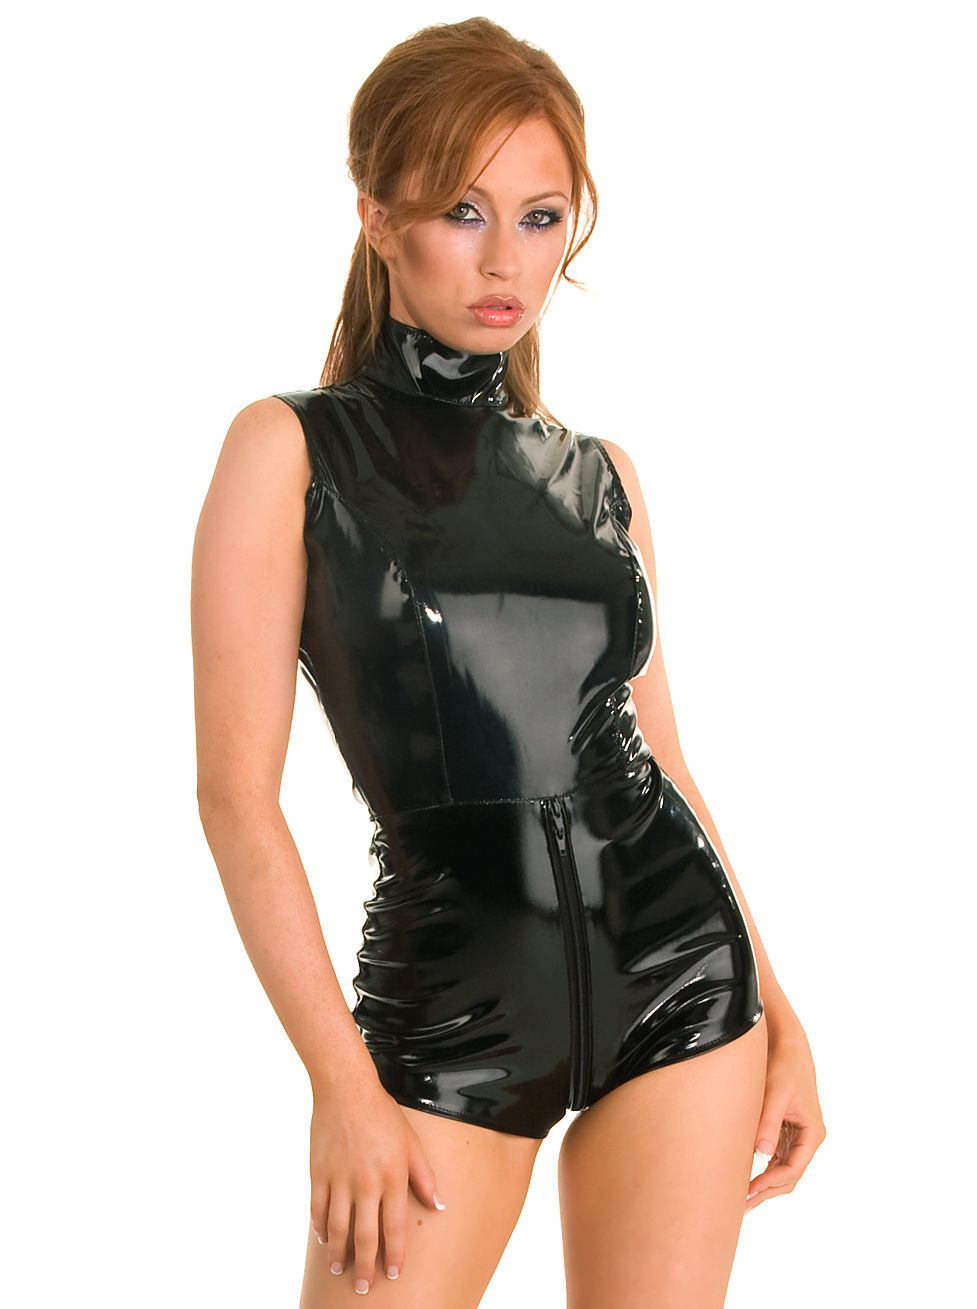 Sexy Women Wet Look PVC Erotic Lingerie Black Bodysuit Front Zipper Crotch Costume